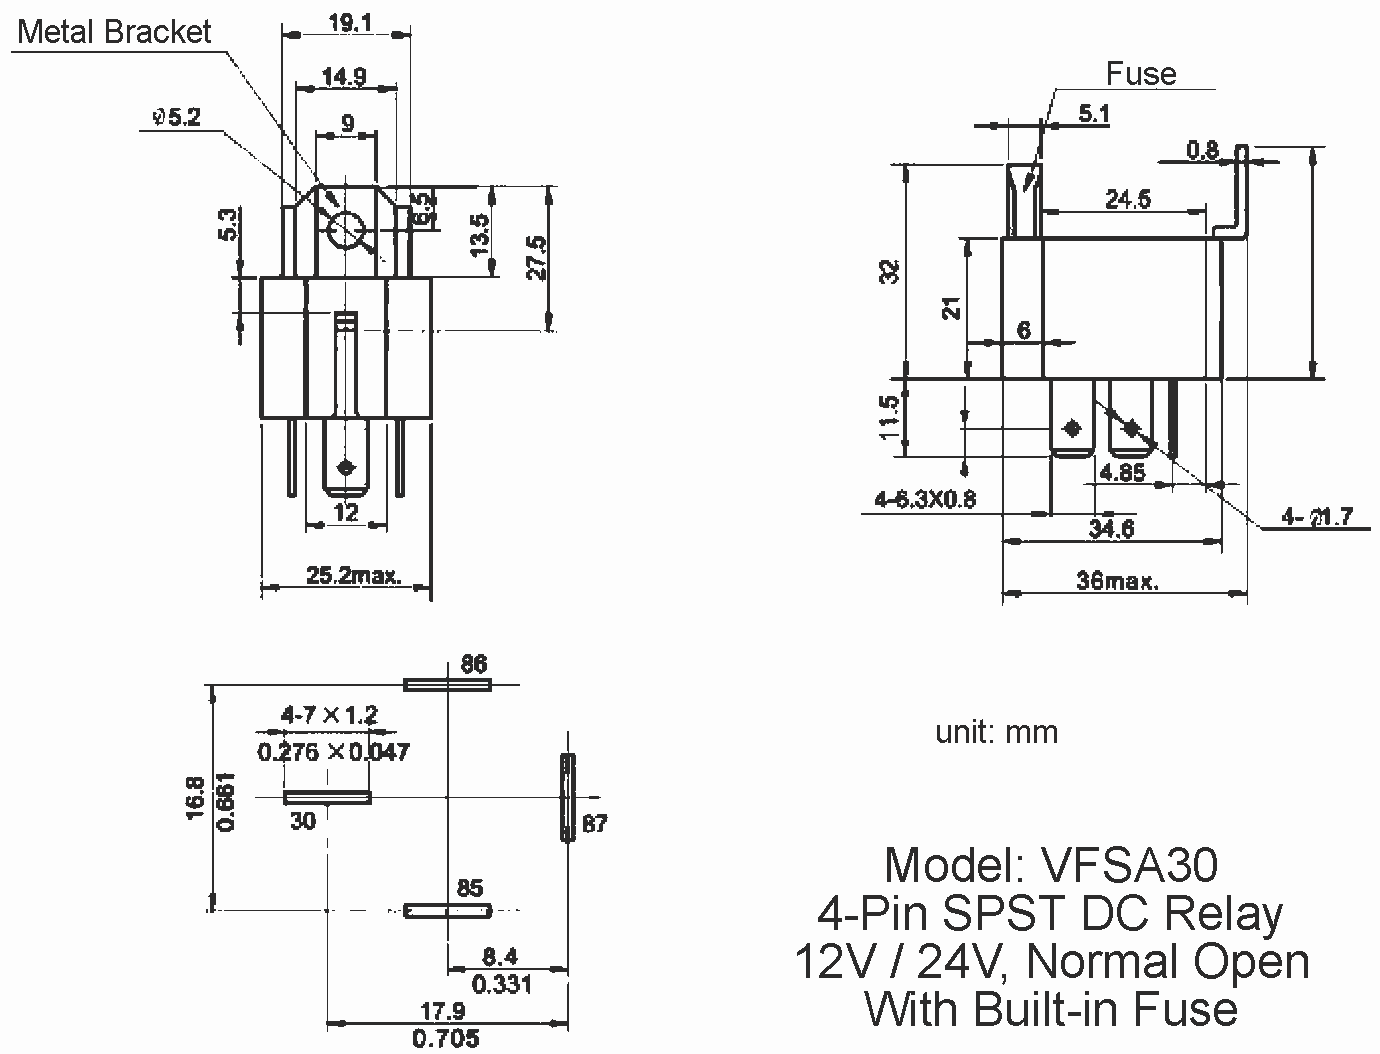 dimension diagram, 12v and 24v automotive dc relay, 30a spst 4-pin dc